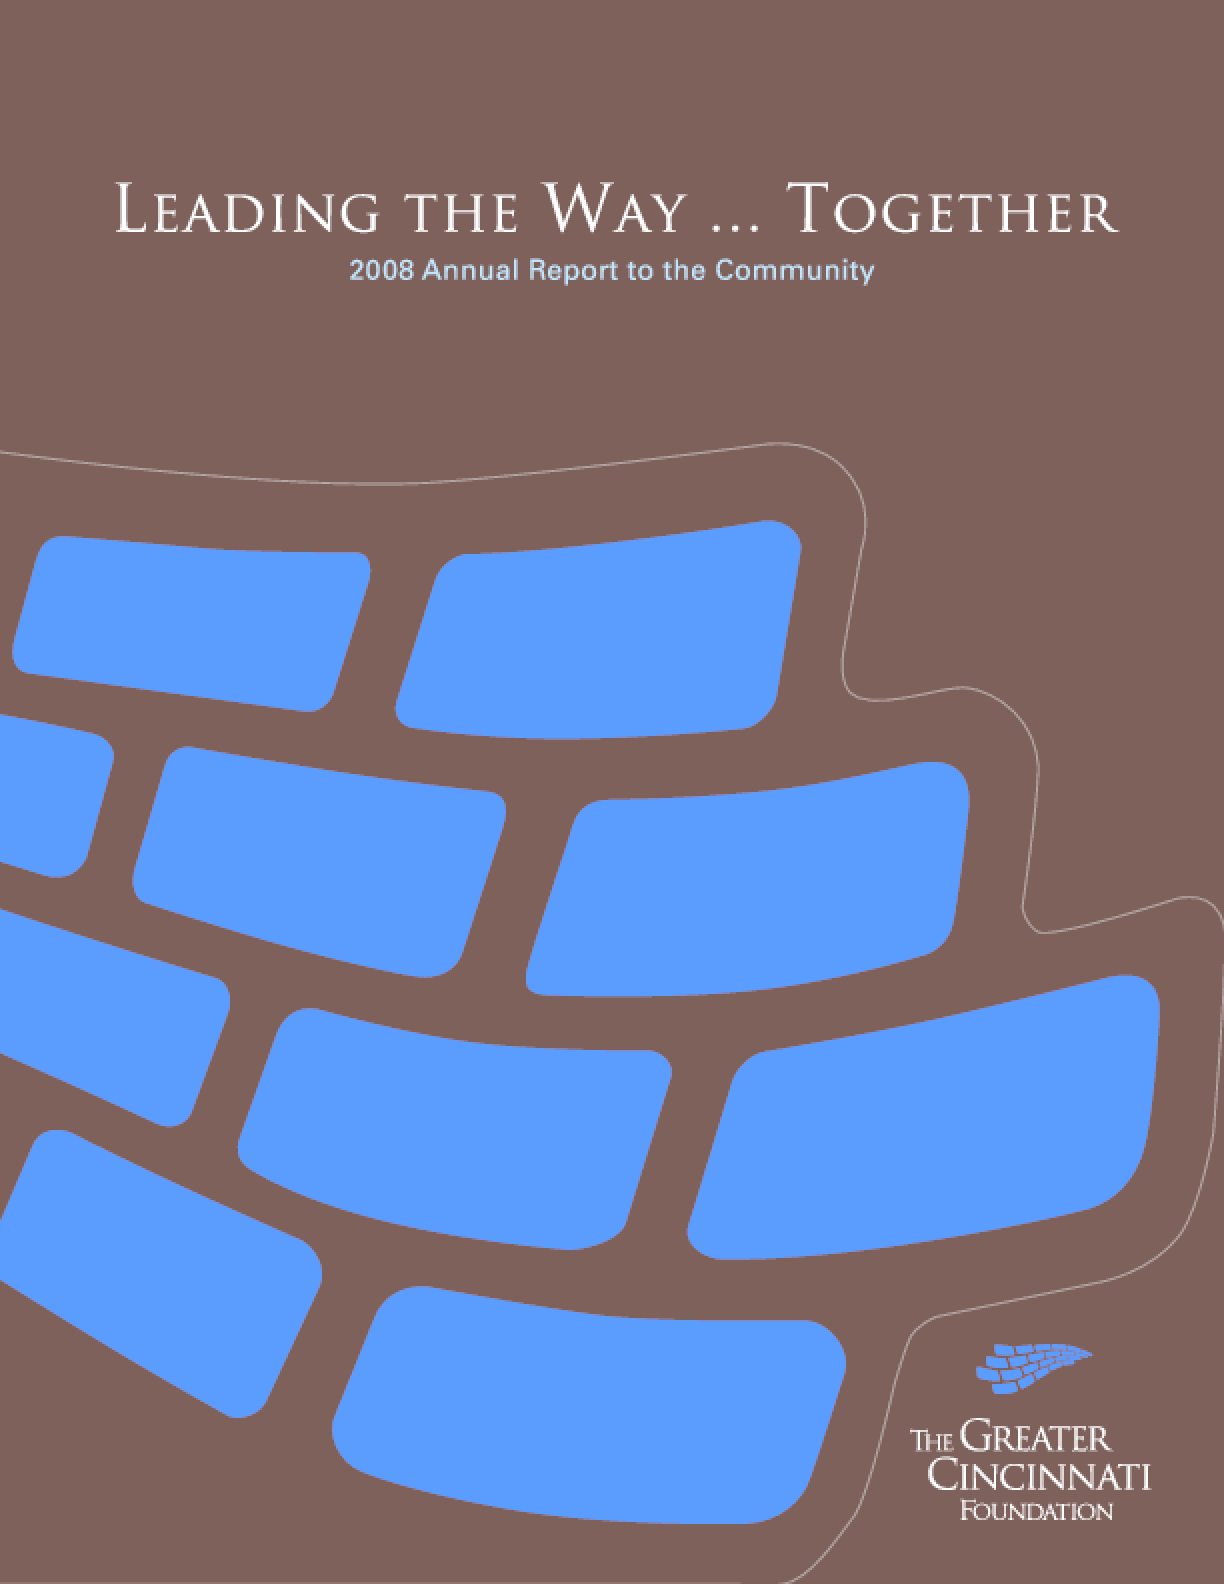 Greater Cincinnati Foundation - 2008 Annual Report: Leading the Way... Together